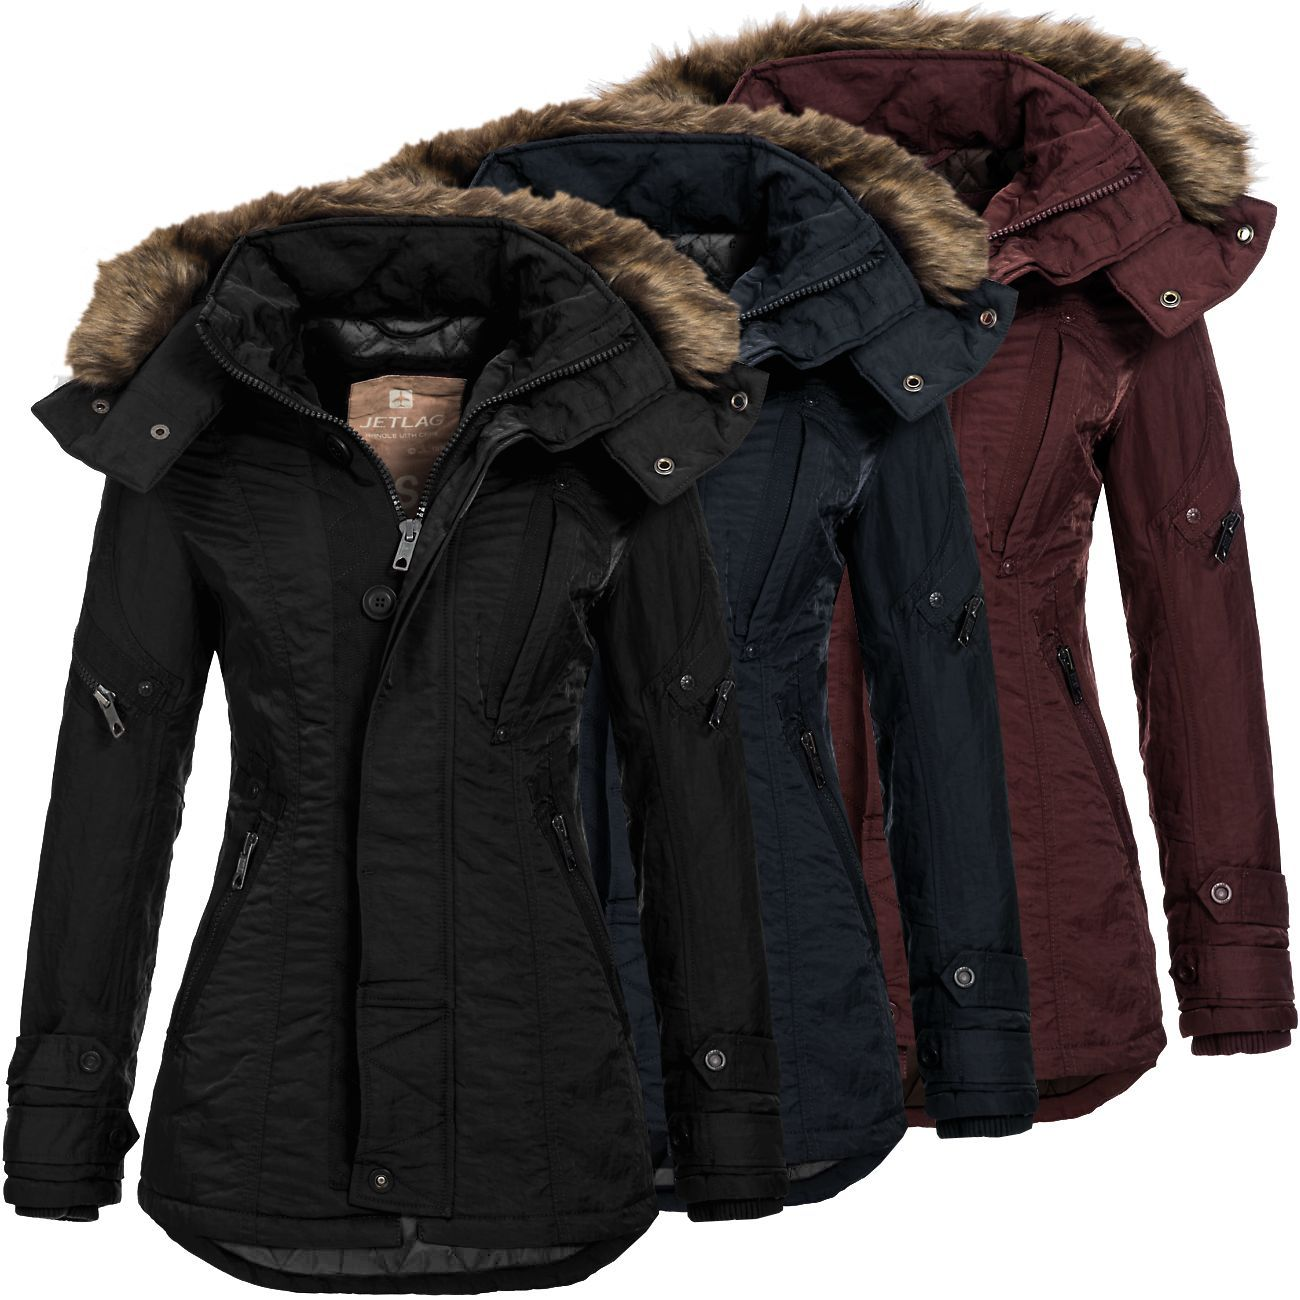 jet lag damen winterparka sw 61b damenjacke jacke parka fellkapuze wintermantel ebay. Black Bedroom Furniture Sets. Home Design Ideas